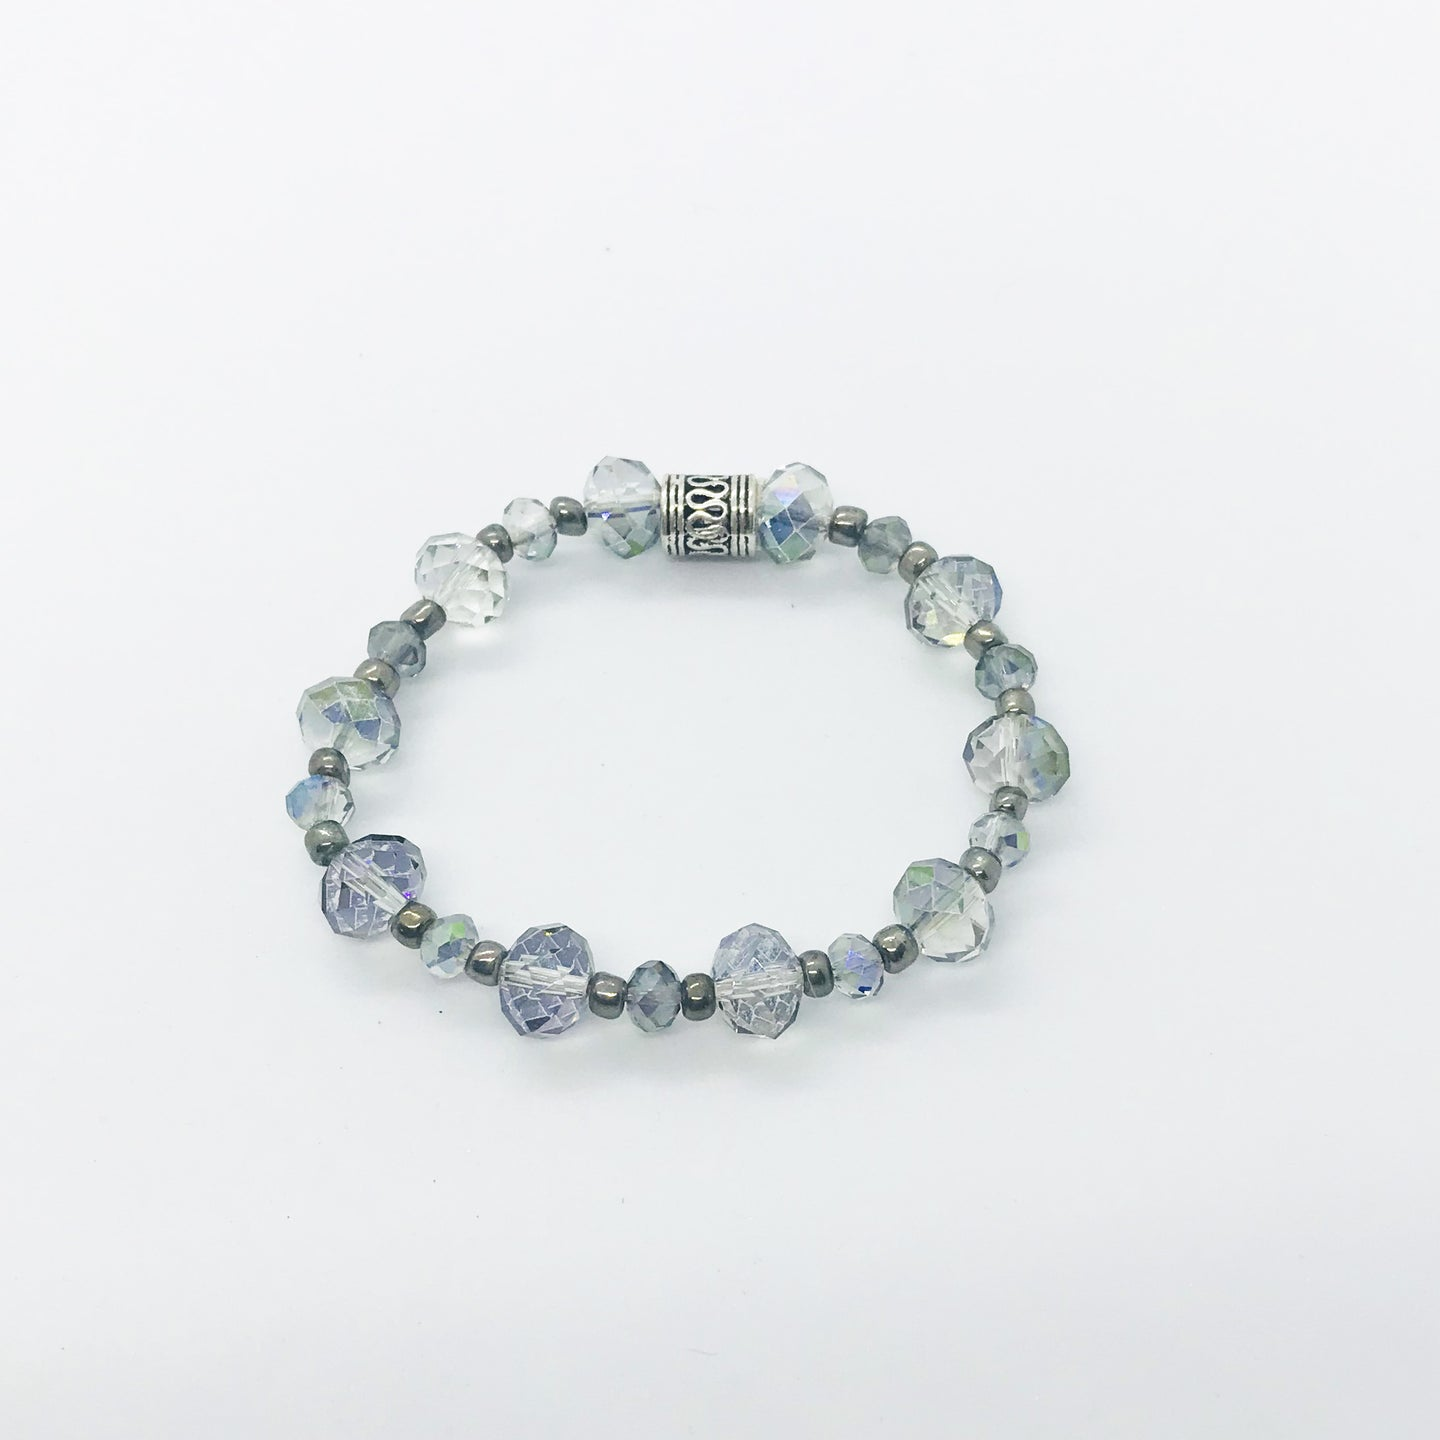 Glass Bead Stretchy Bracelet - B839